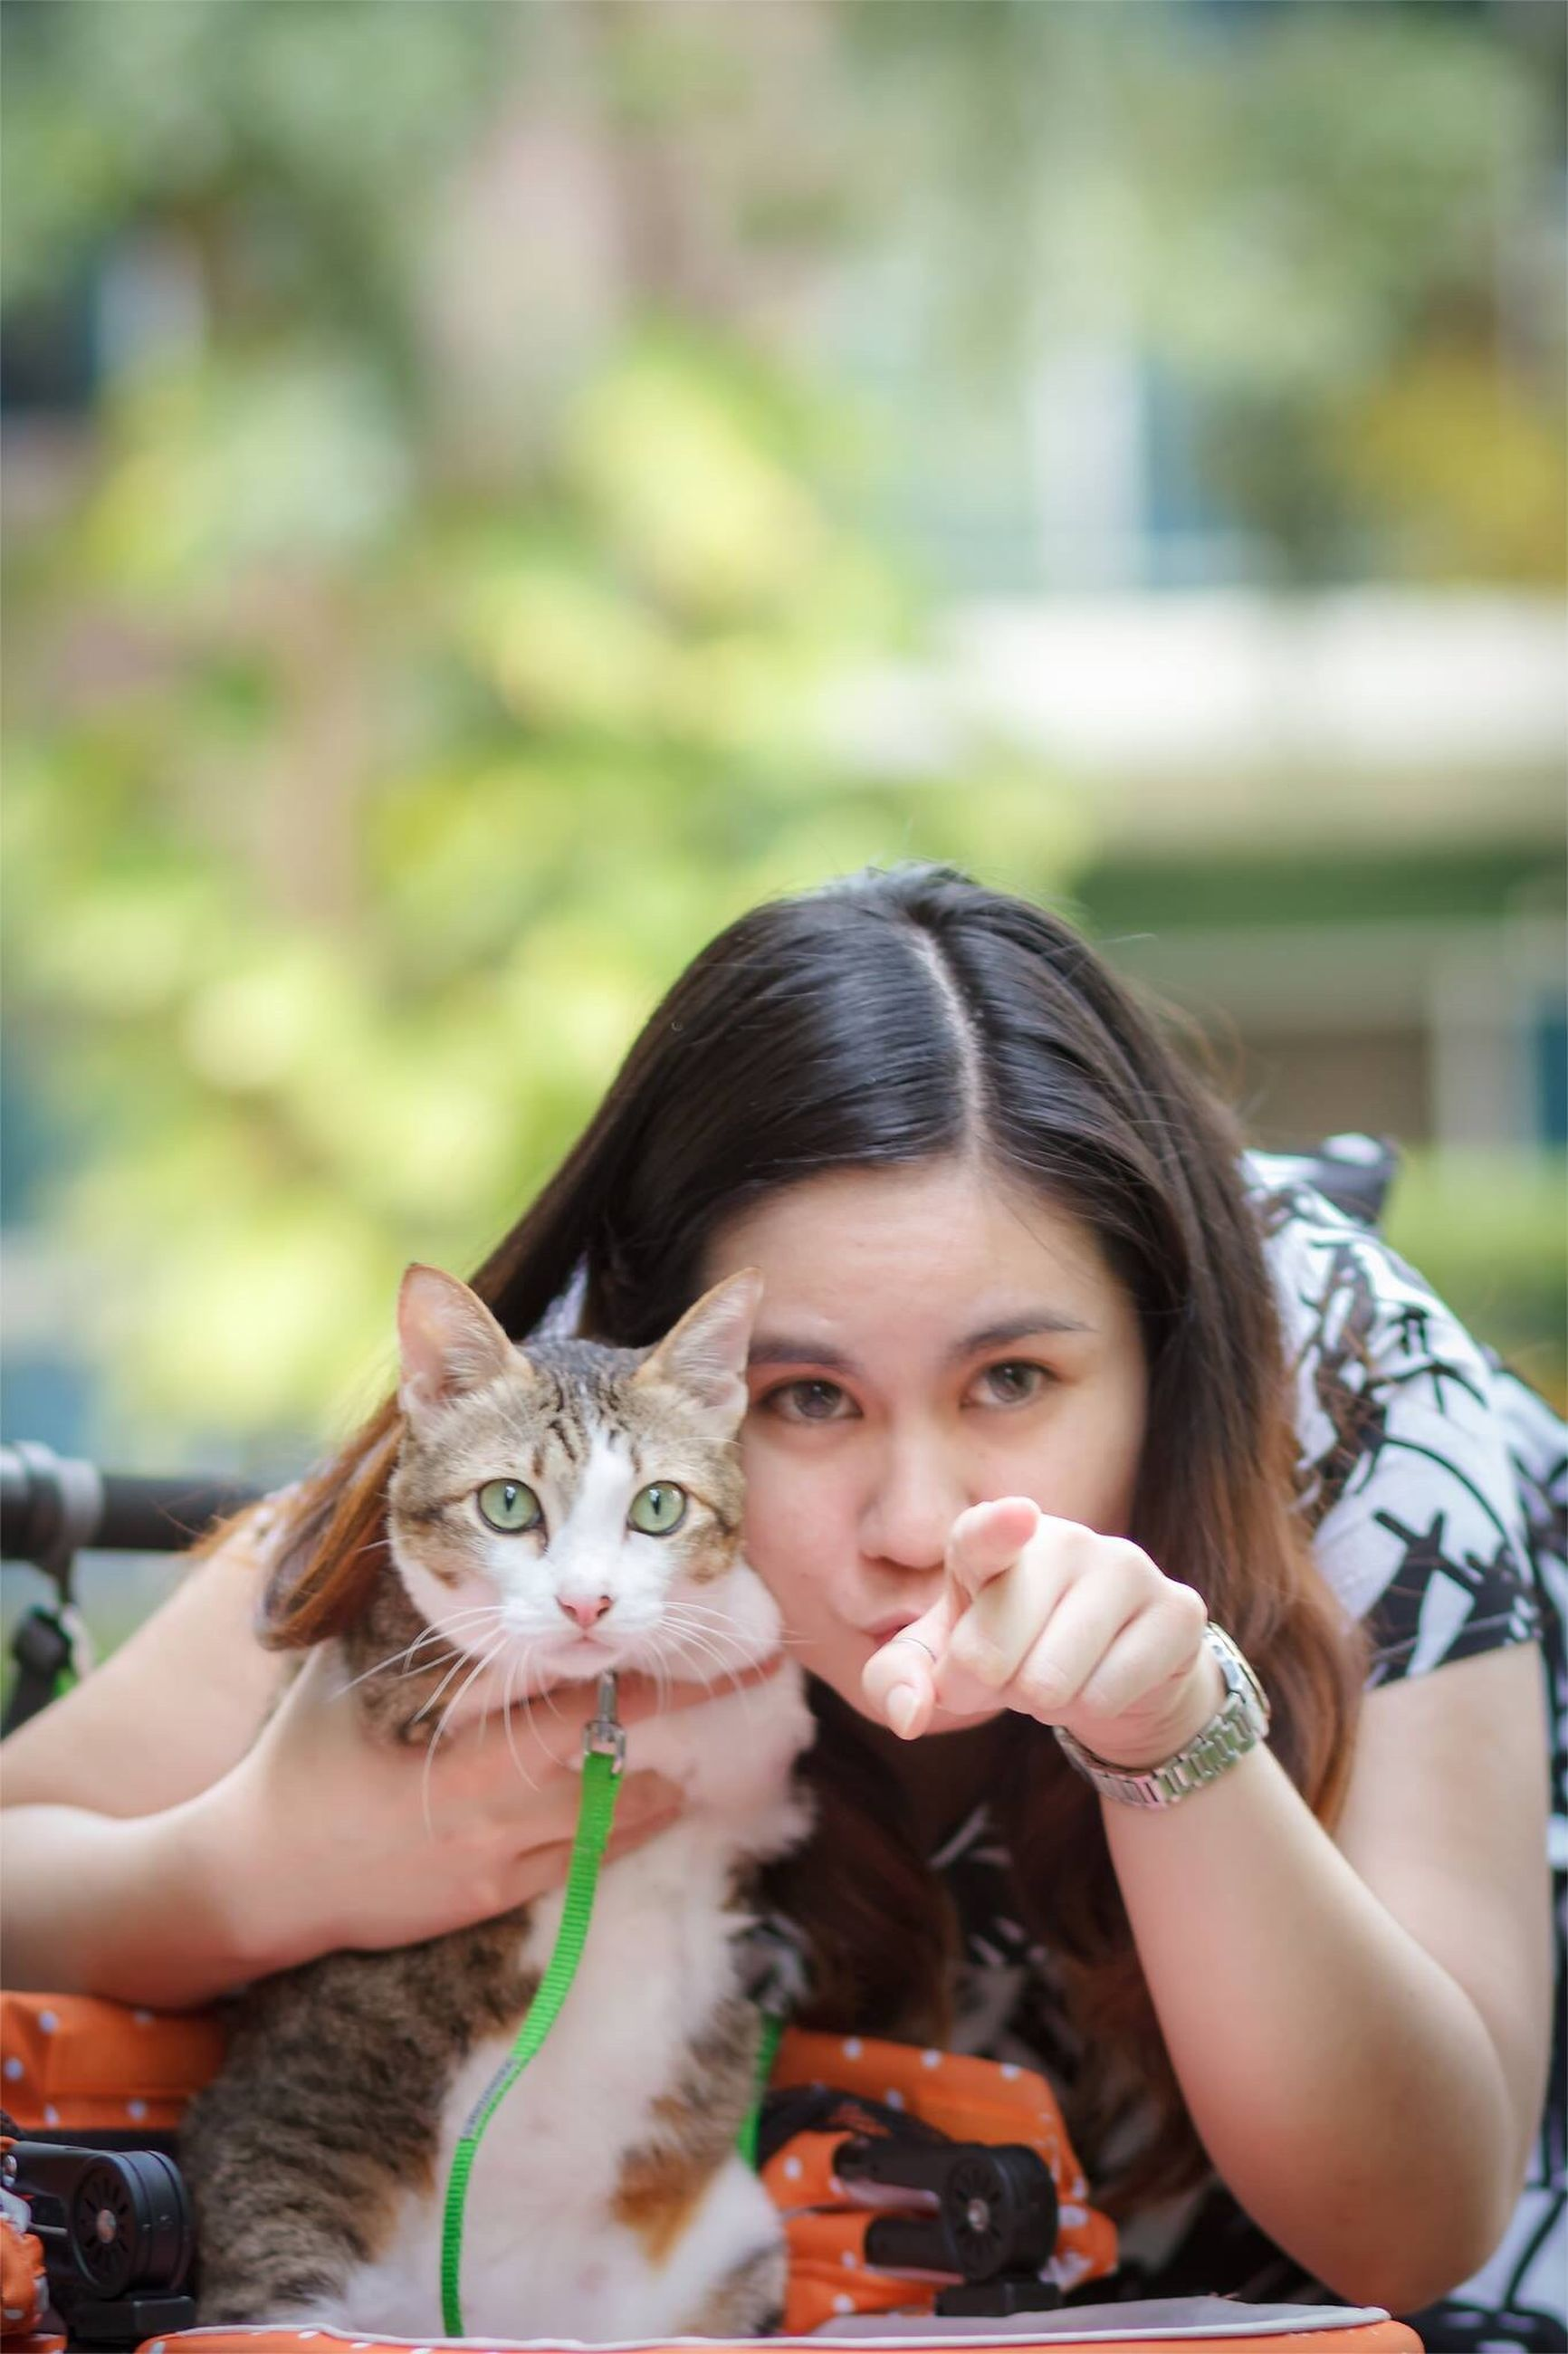 looking at camera, portrait, person, lifestyles, leisure activity, smiling, focus on foreground, pets, front view, happiness, headshot, animal themes, cute, elementary age, one animal, holding, casual clothing, mammal